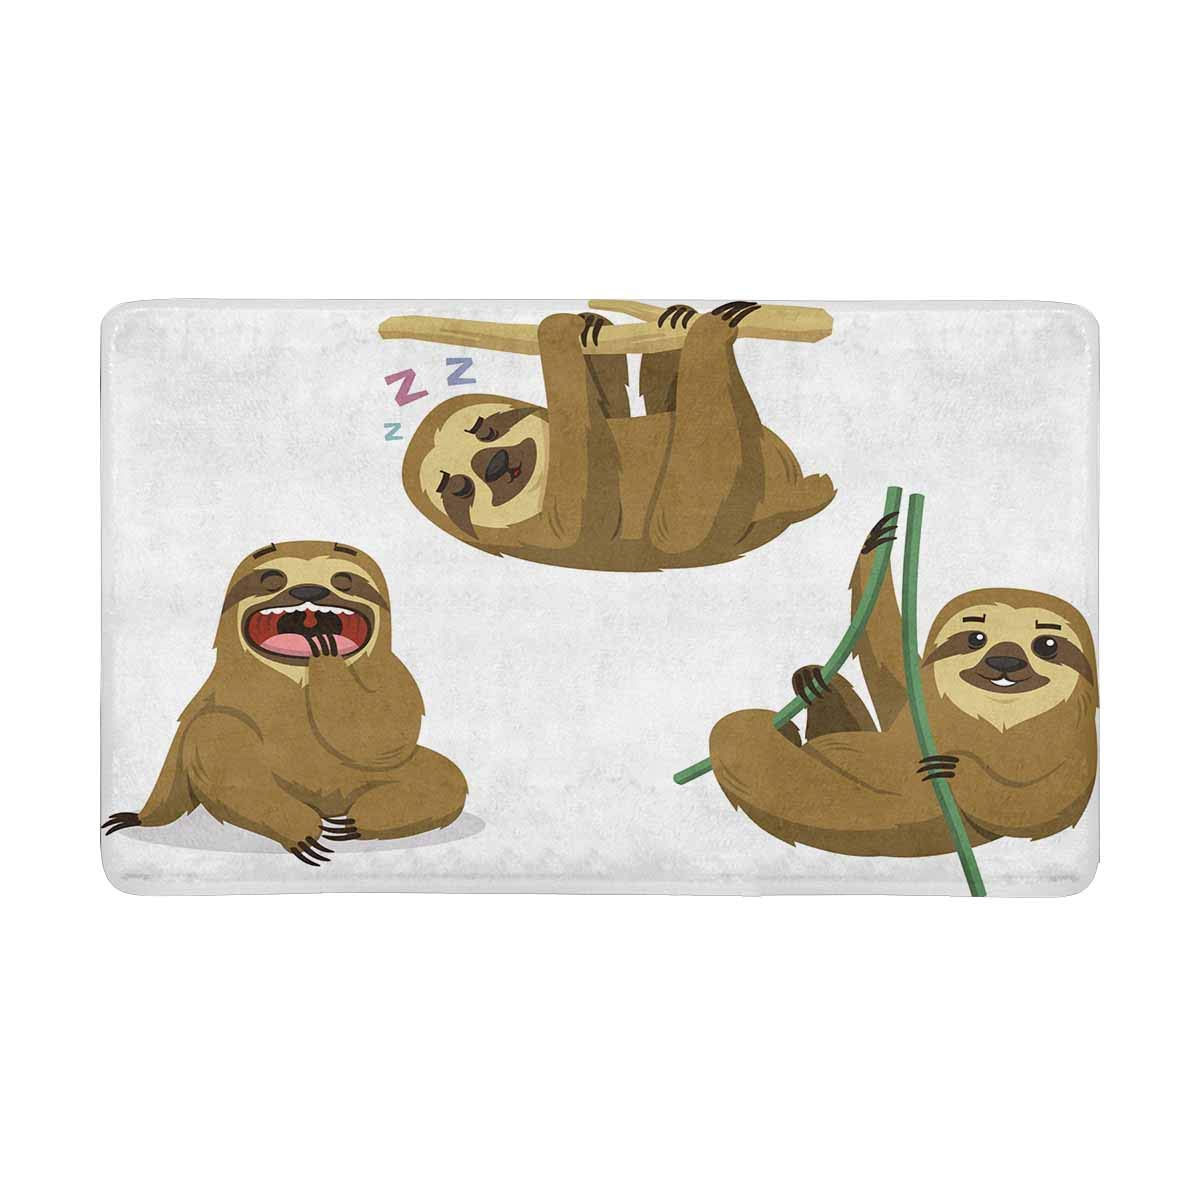 InterestPrint Sloth Rain Forest Two Toed Lazy Mammal Hanging Sloths Anti-Slip Door Mat Home Decor Indoor Entrance Doormat Rubber Backing 30 X 18 Inches